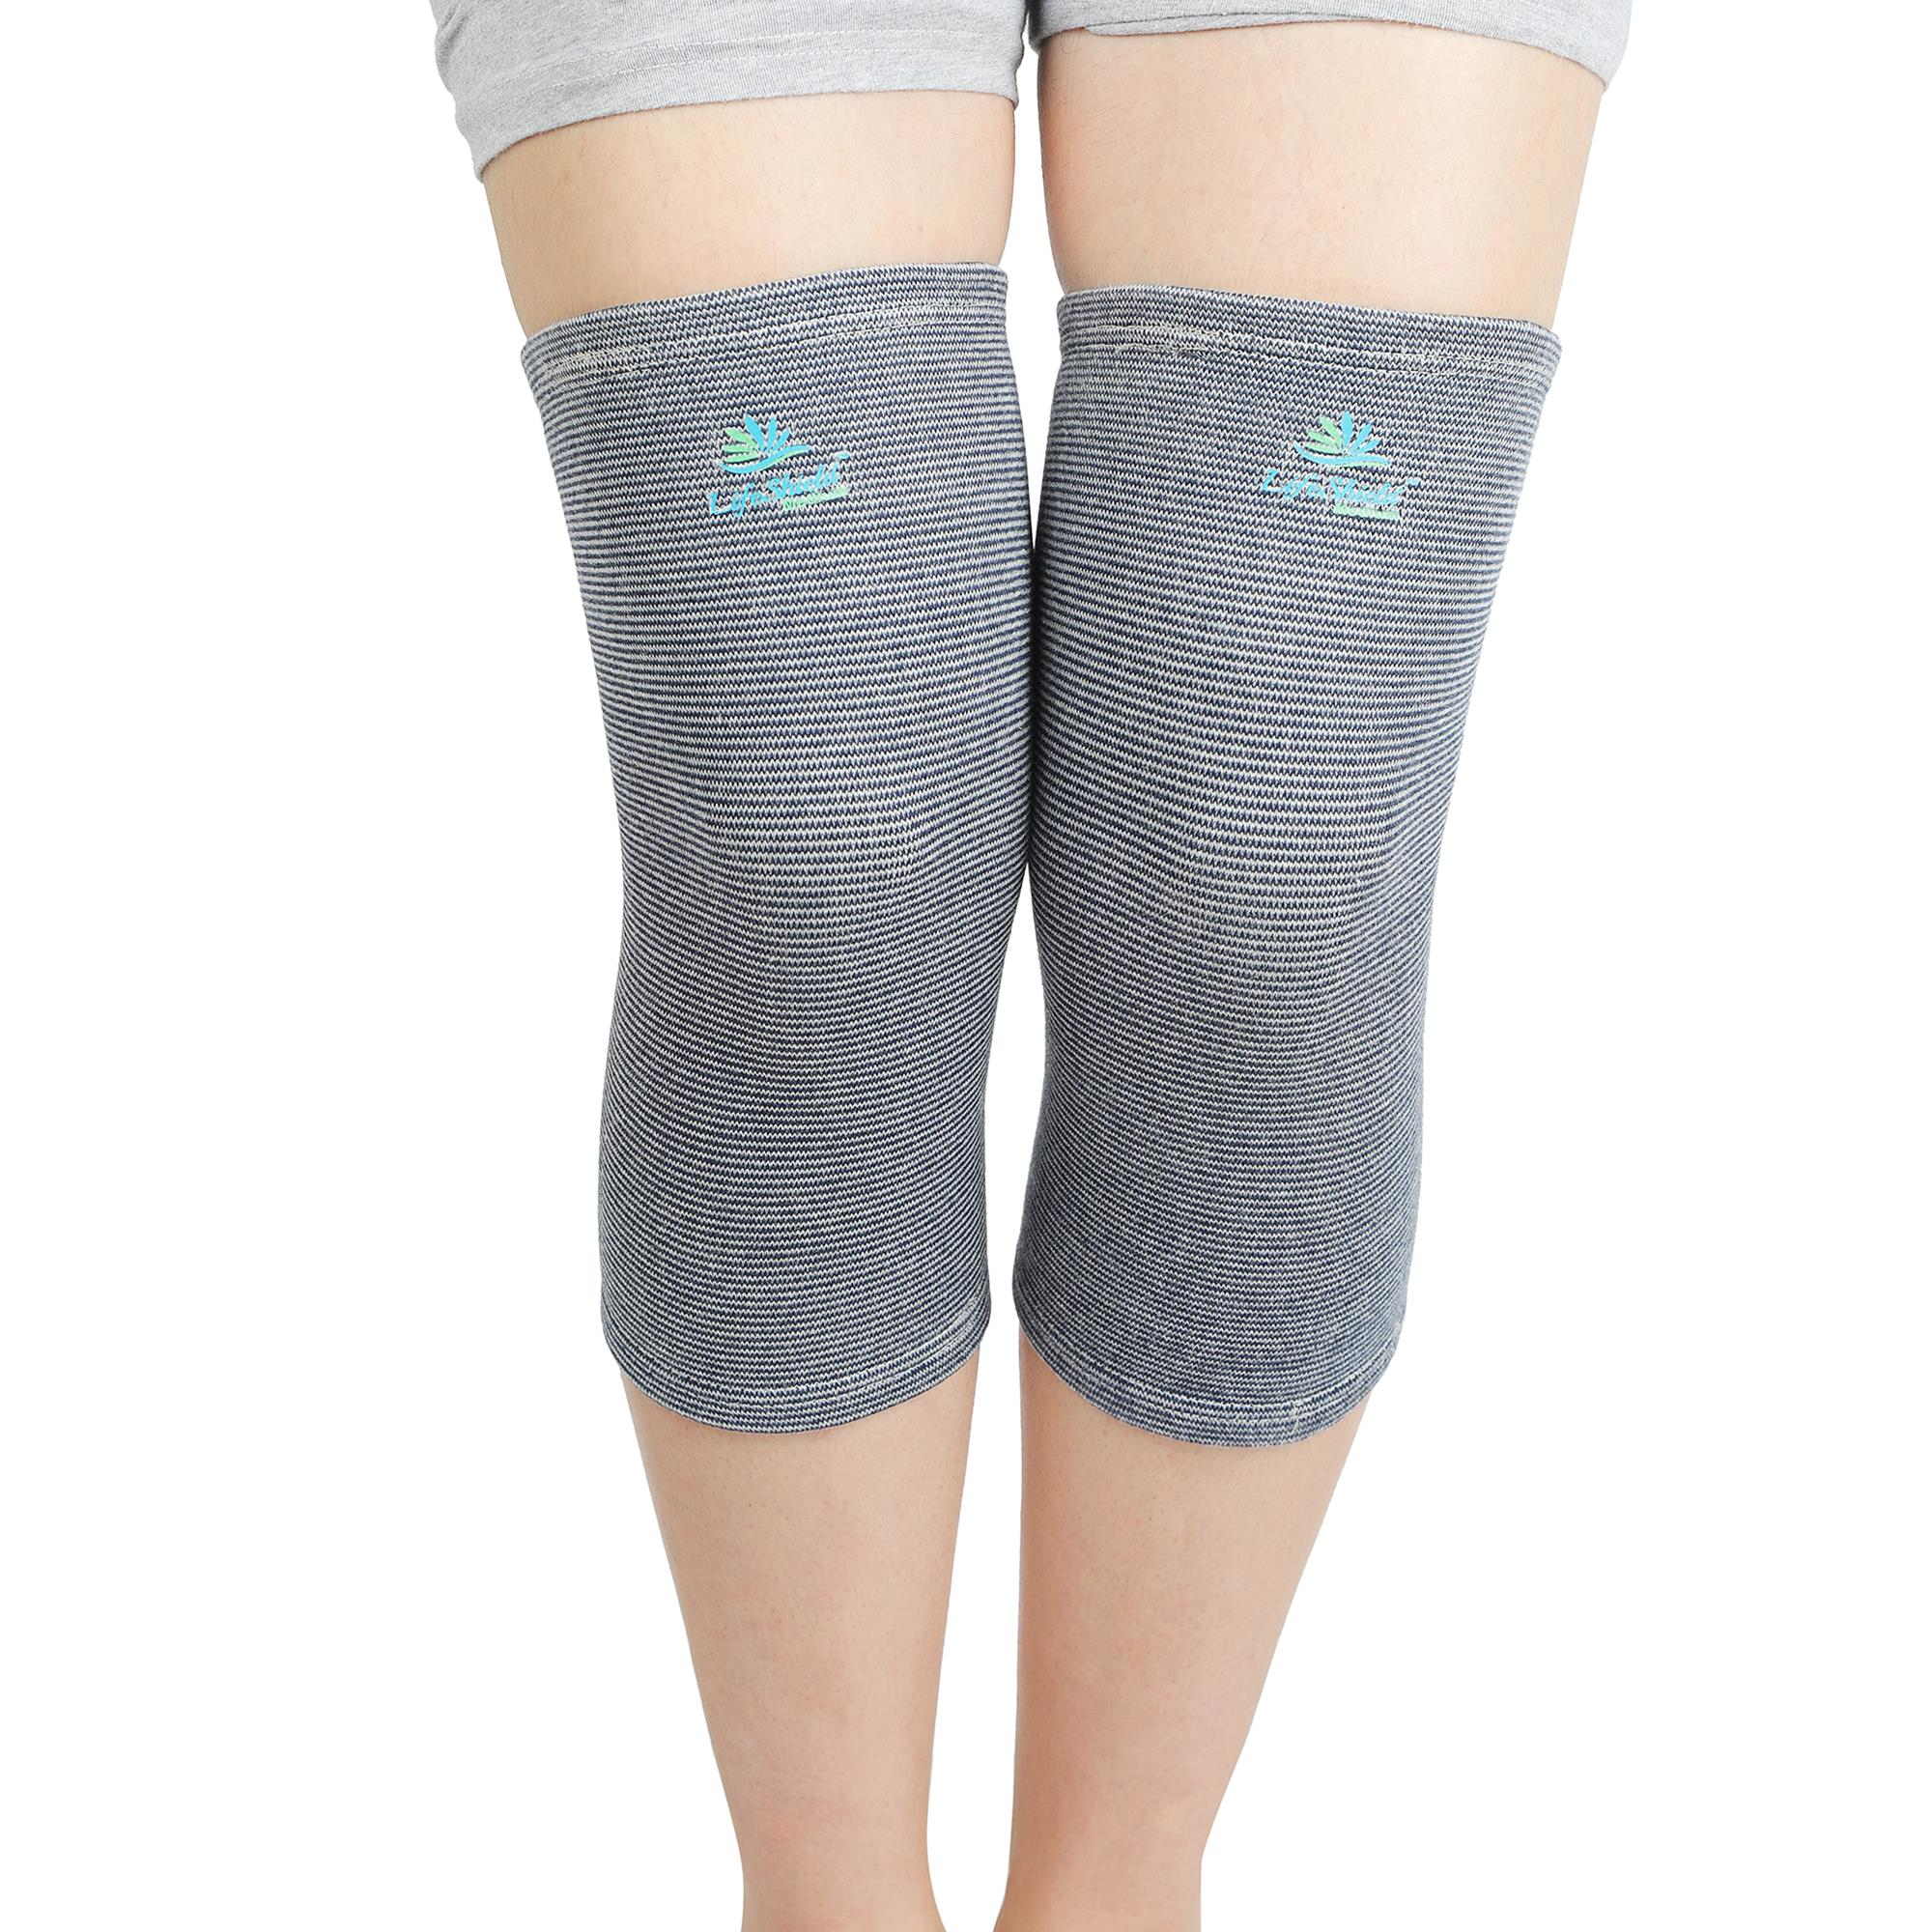 Lifeshield Knee Cap - 4 Way Cotton (Pair): Helps In Knee Joint Pain, Relief By Compressing Muscles And Veins (Medium)